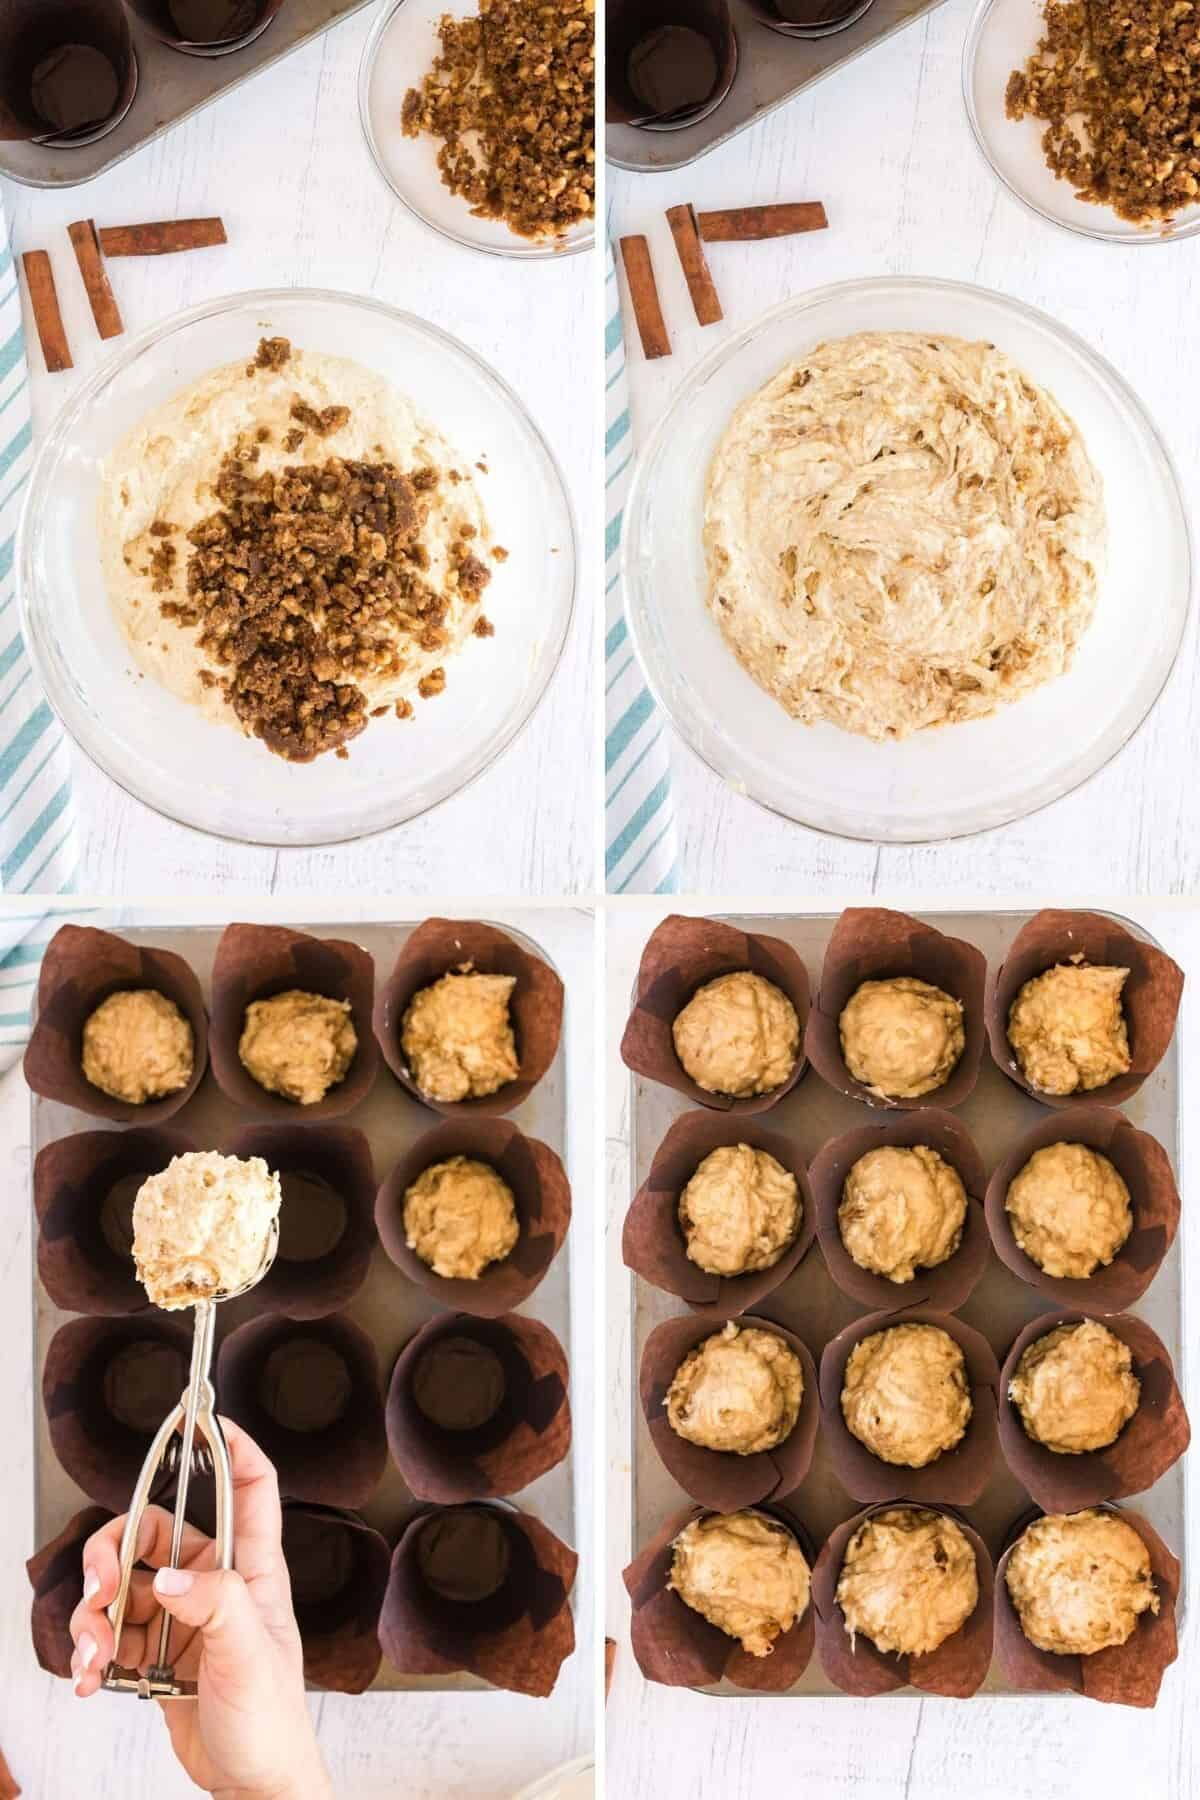 collage showing mixing muffin batter and scooping into muffin pans